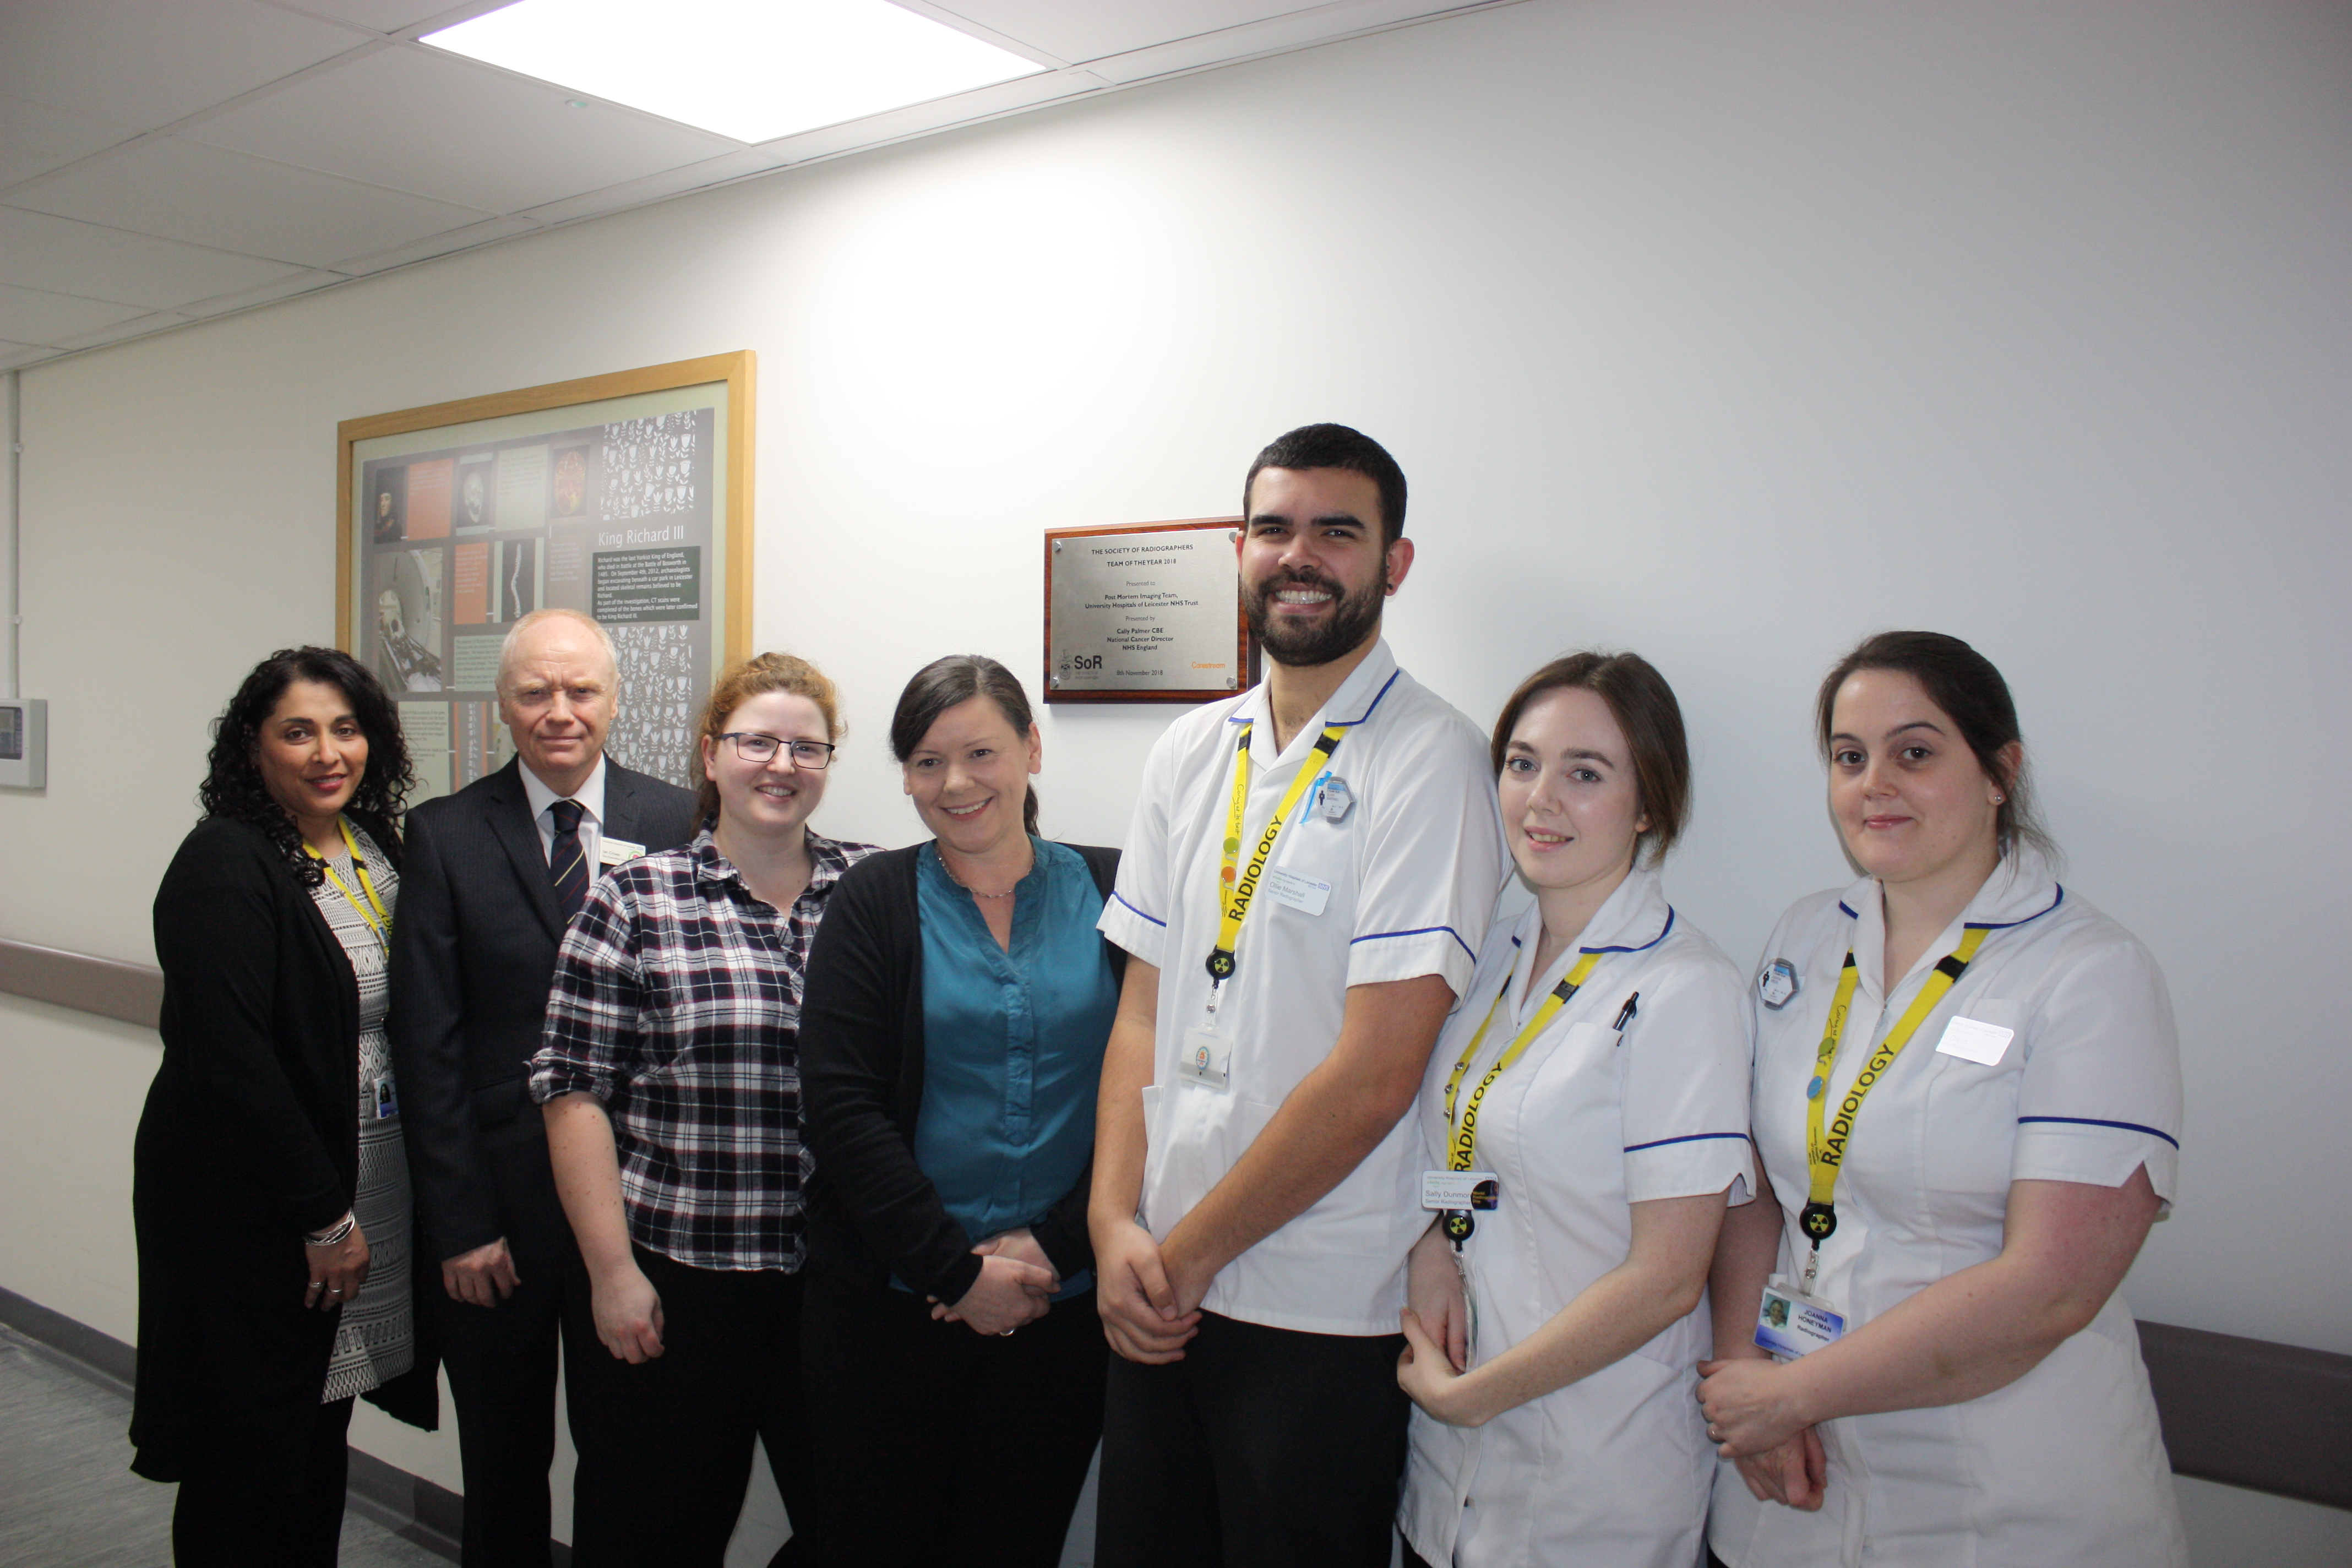 Radiographers recognised as team of the year